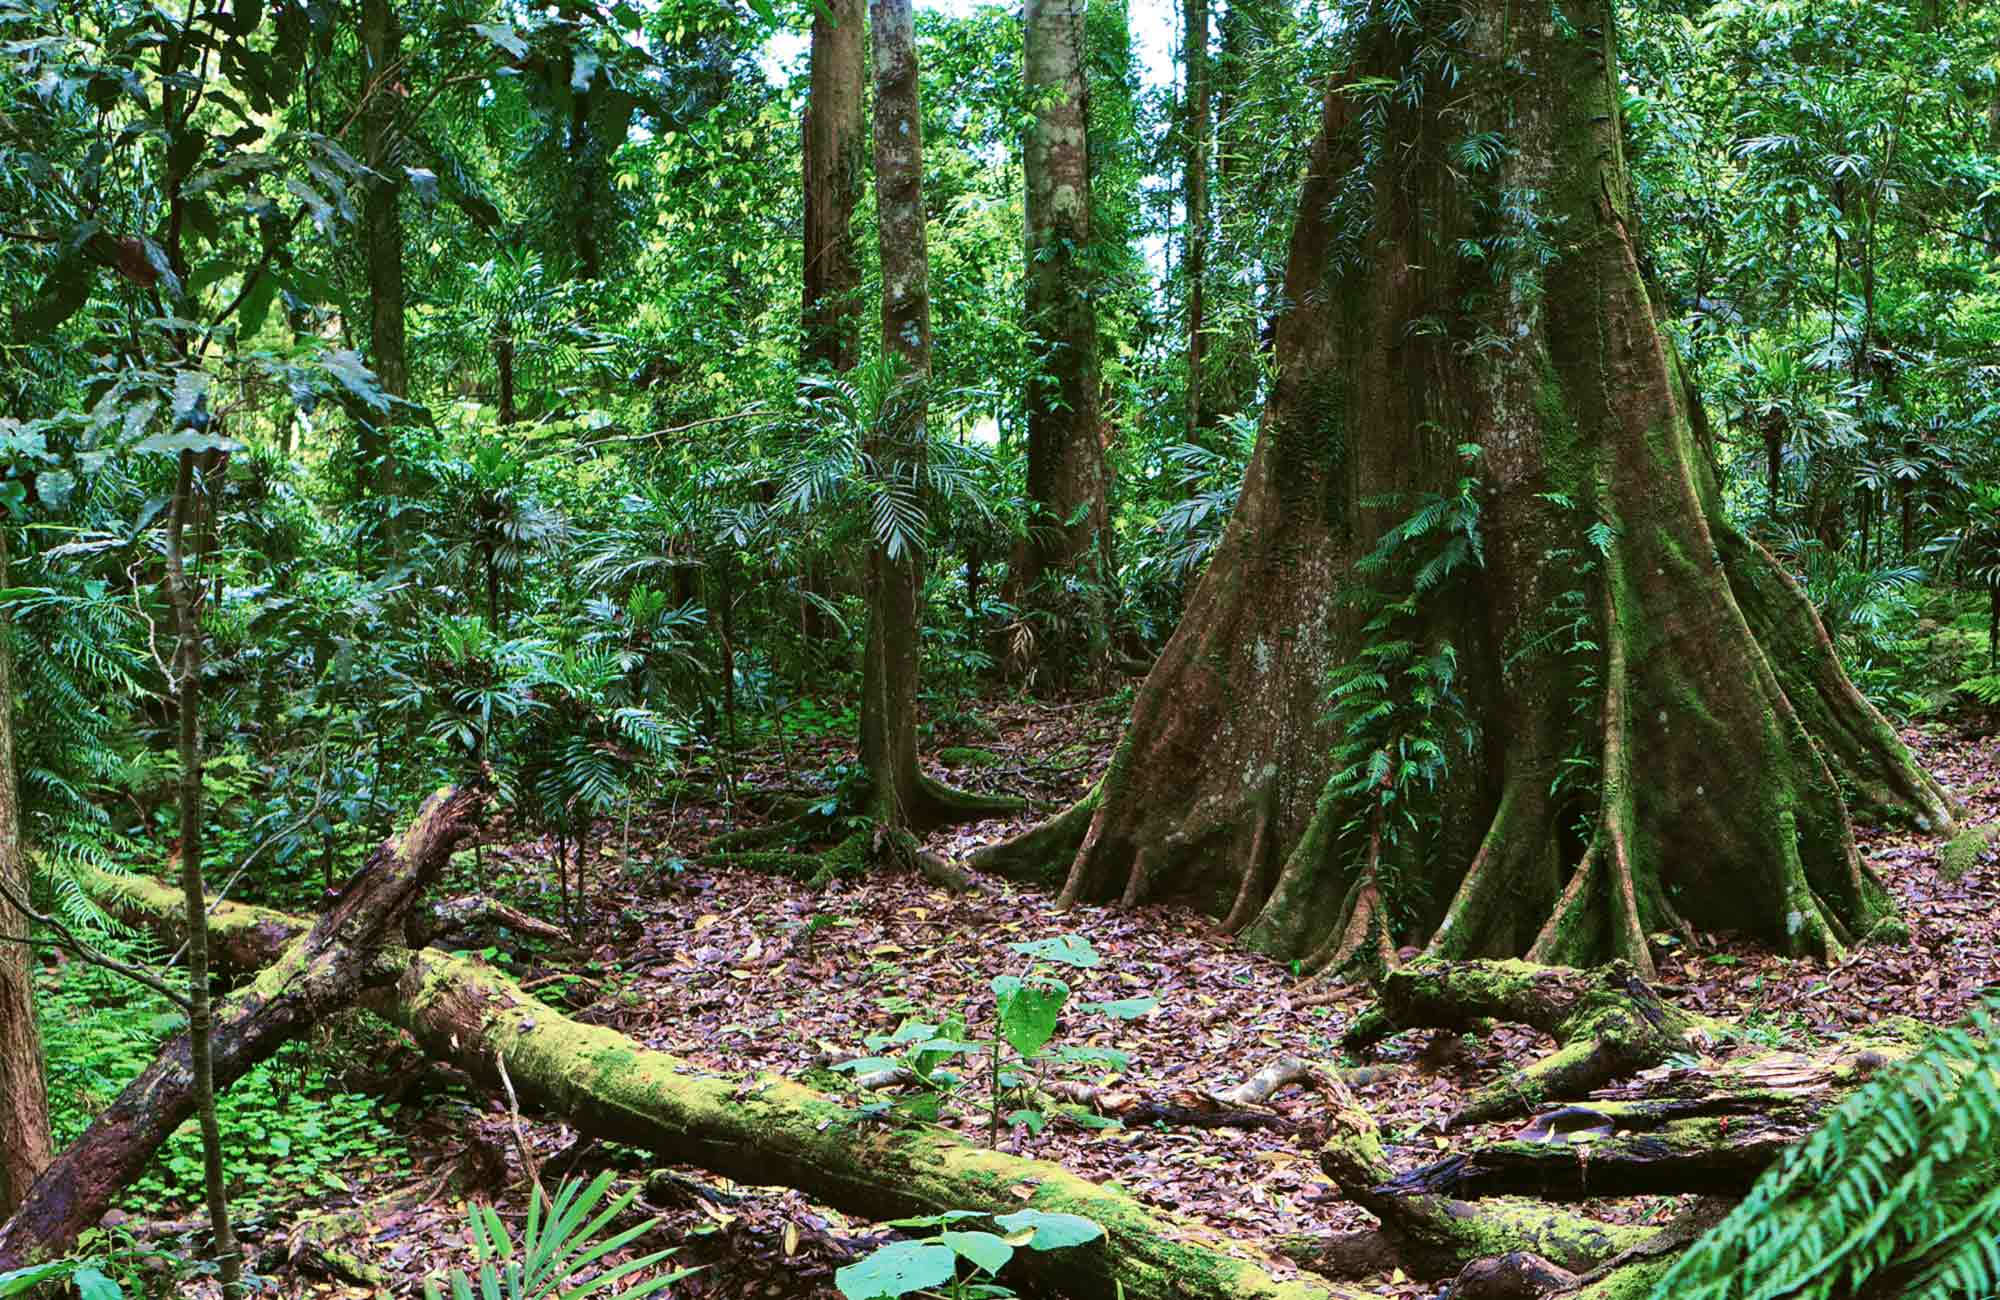 Rainforest setting. Photo:Rob Cleary